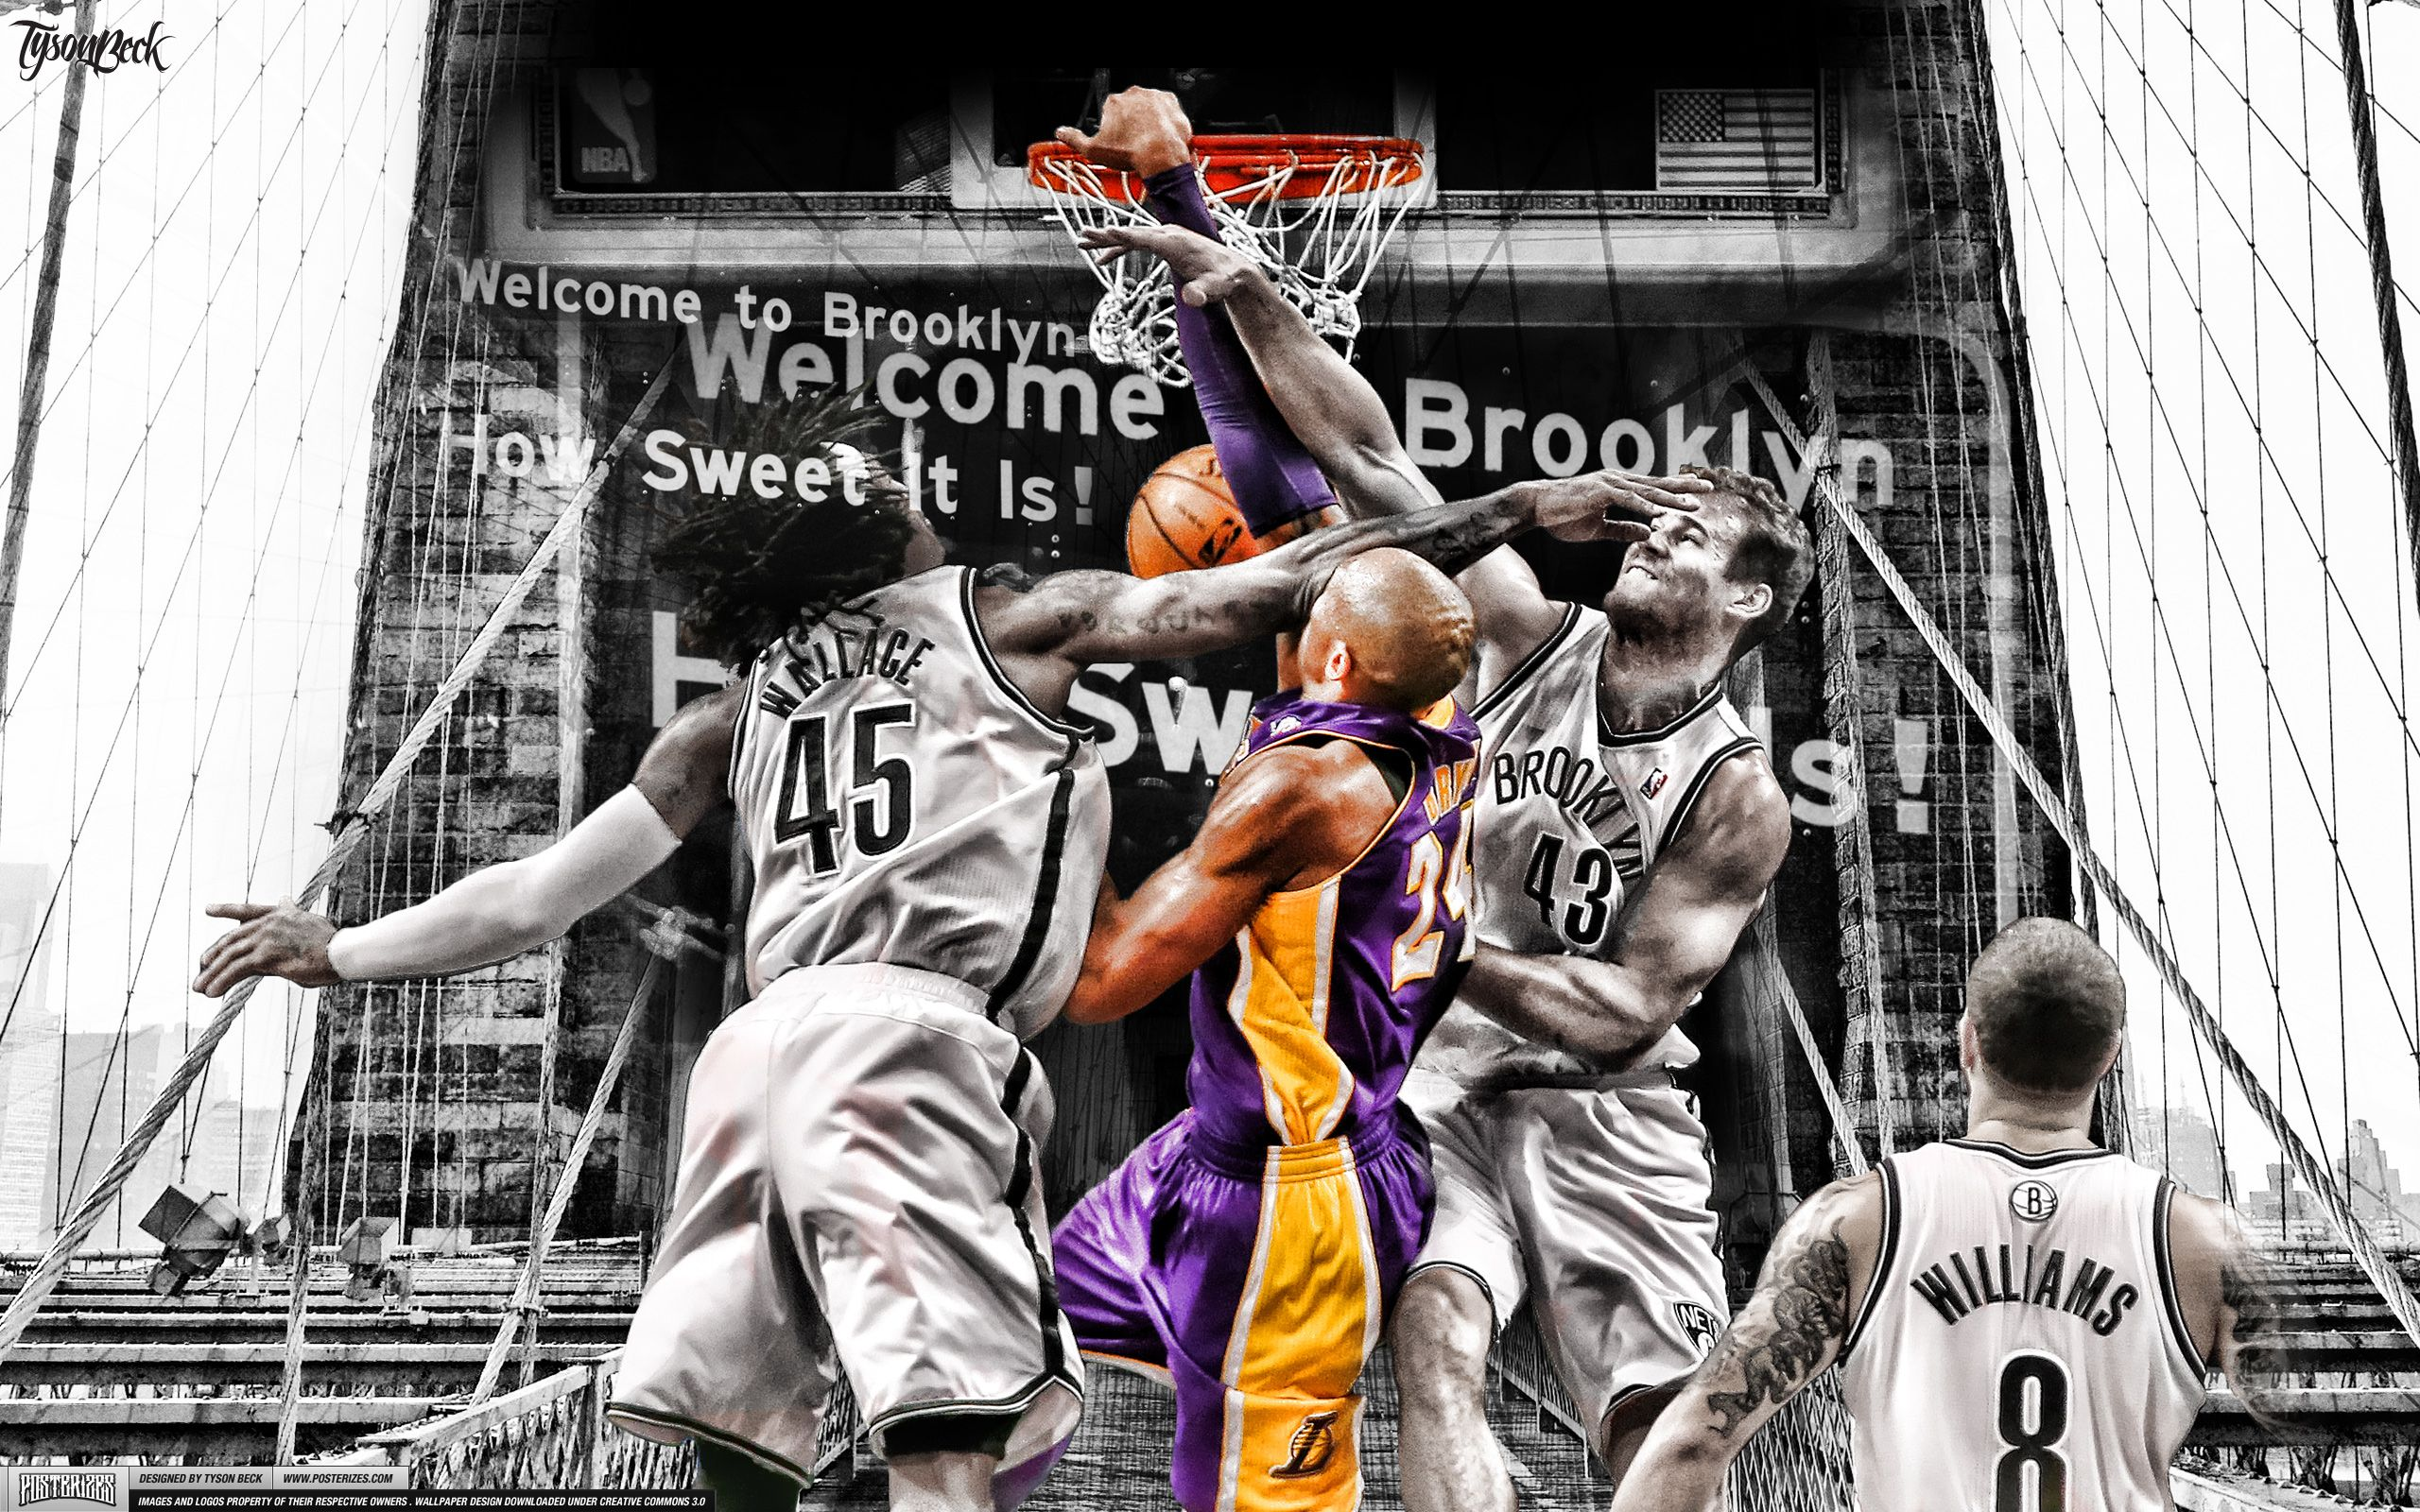 Kobe bryant wallpaper dunk free desktop 8 hd wallpapers kobe kobe bryant wallpaper dunk free desktop 8 hd wallpapers voltagebd Image collections